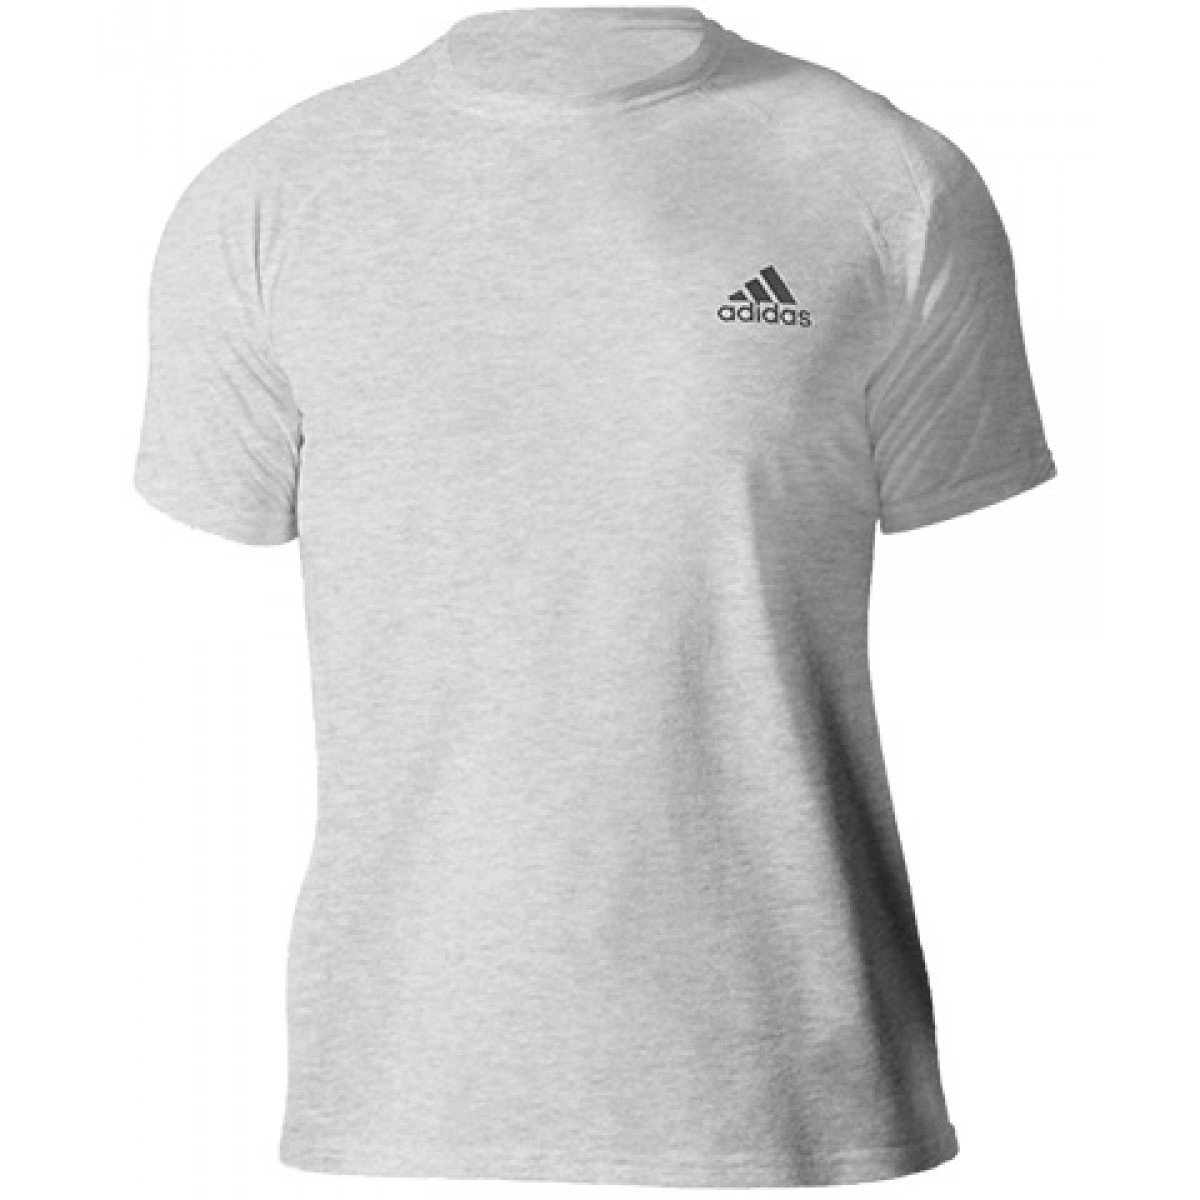 Adidas Embroidered Logo Essential Crew Neck T-shirt-Sports Grey-XL